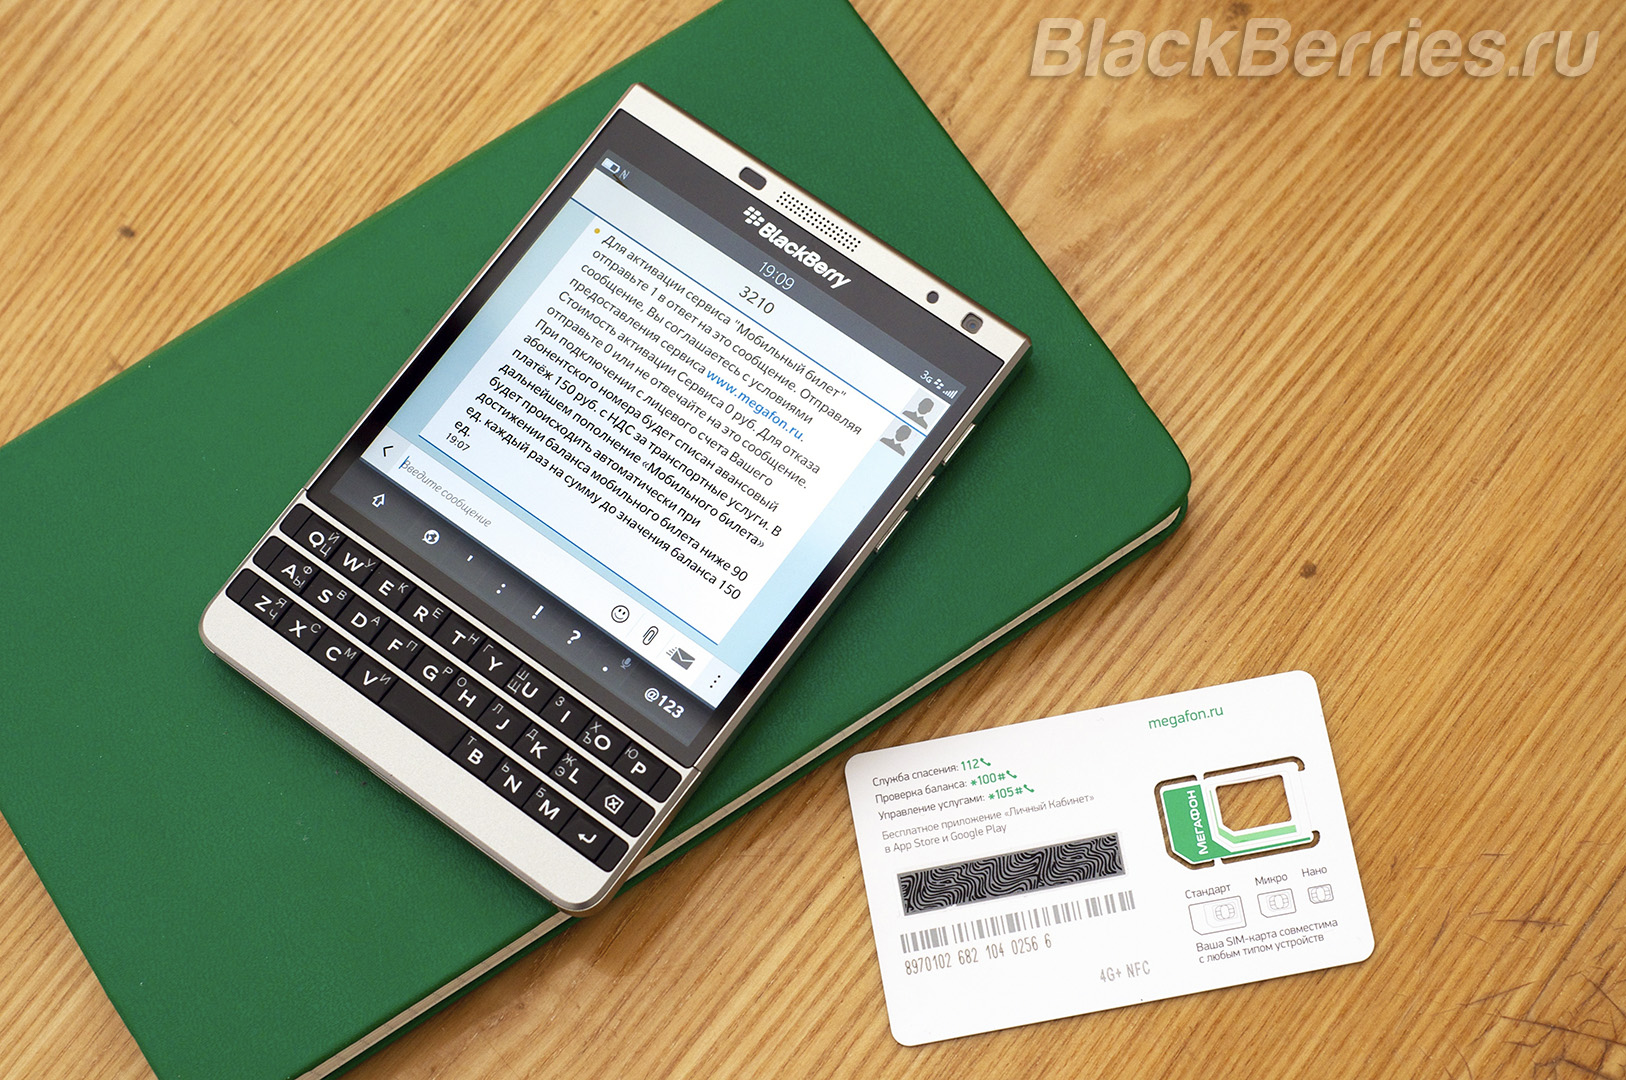 BlackBerry-Passport-MT-2